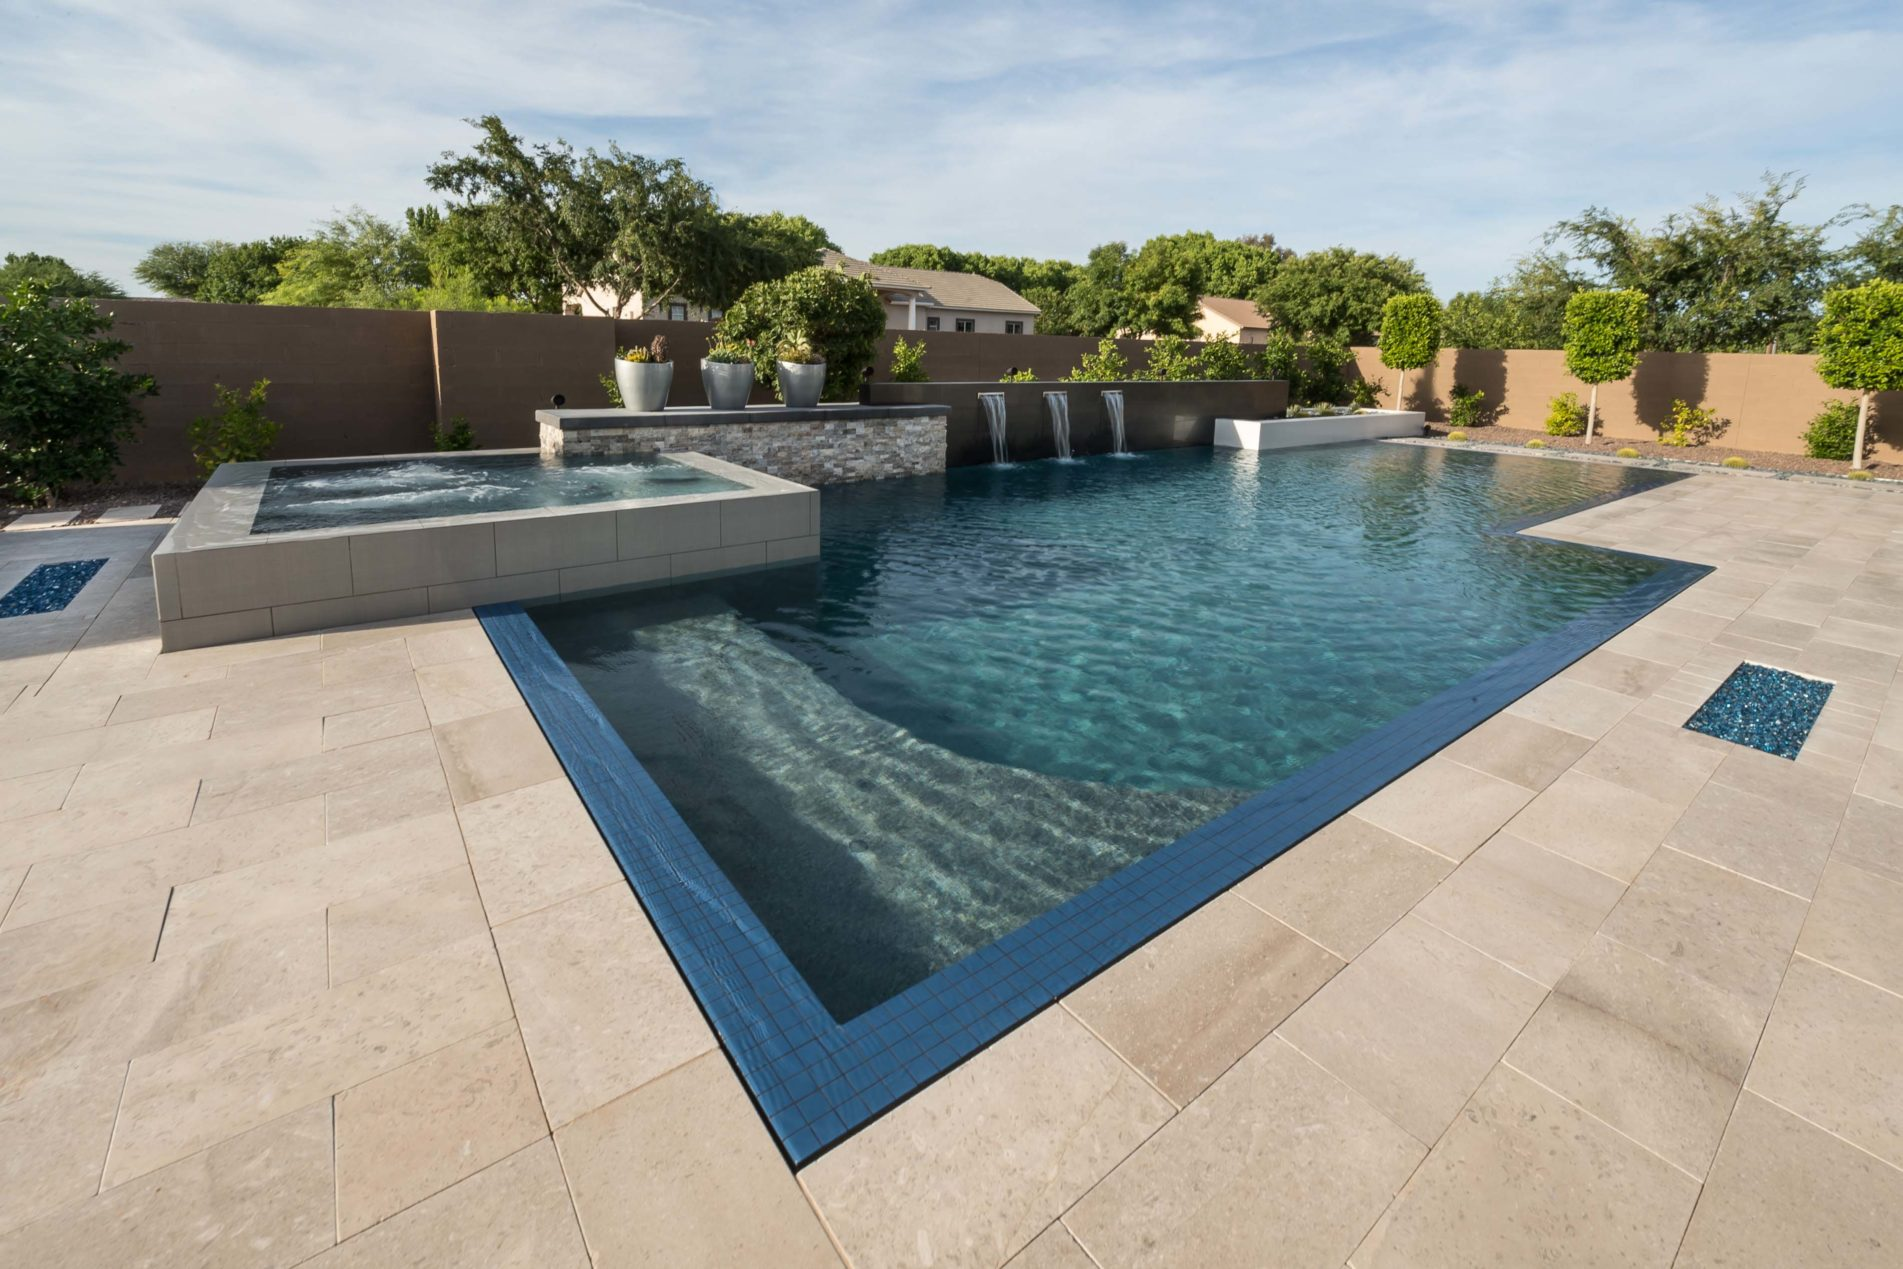 Budget For Your Geometric Pool